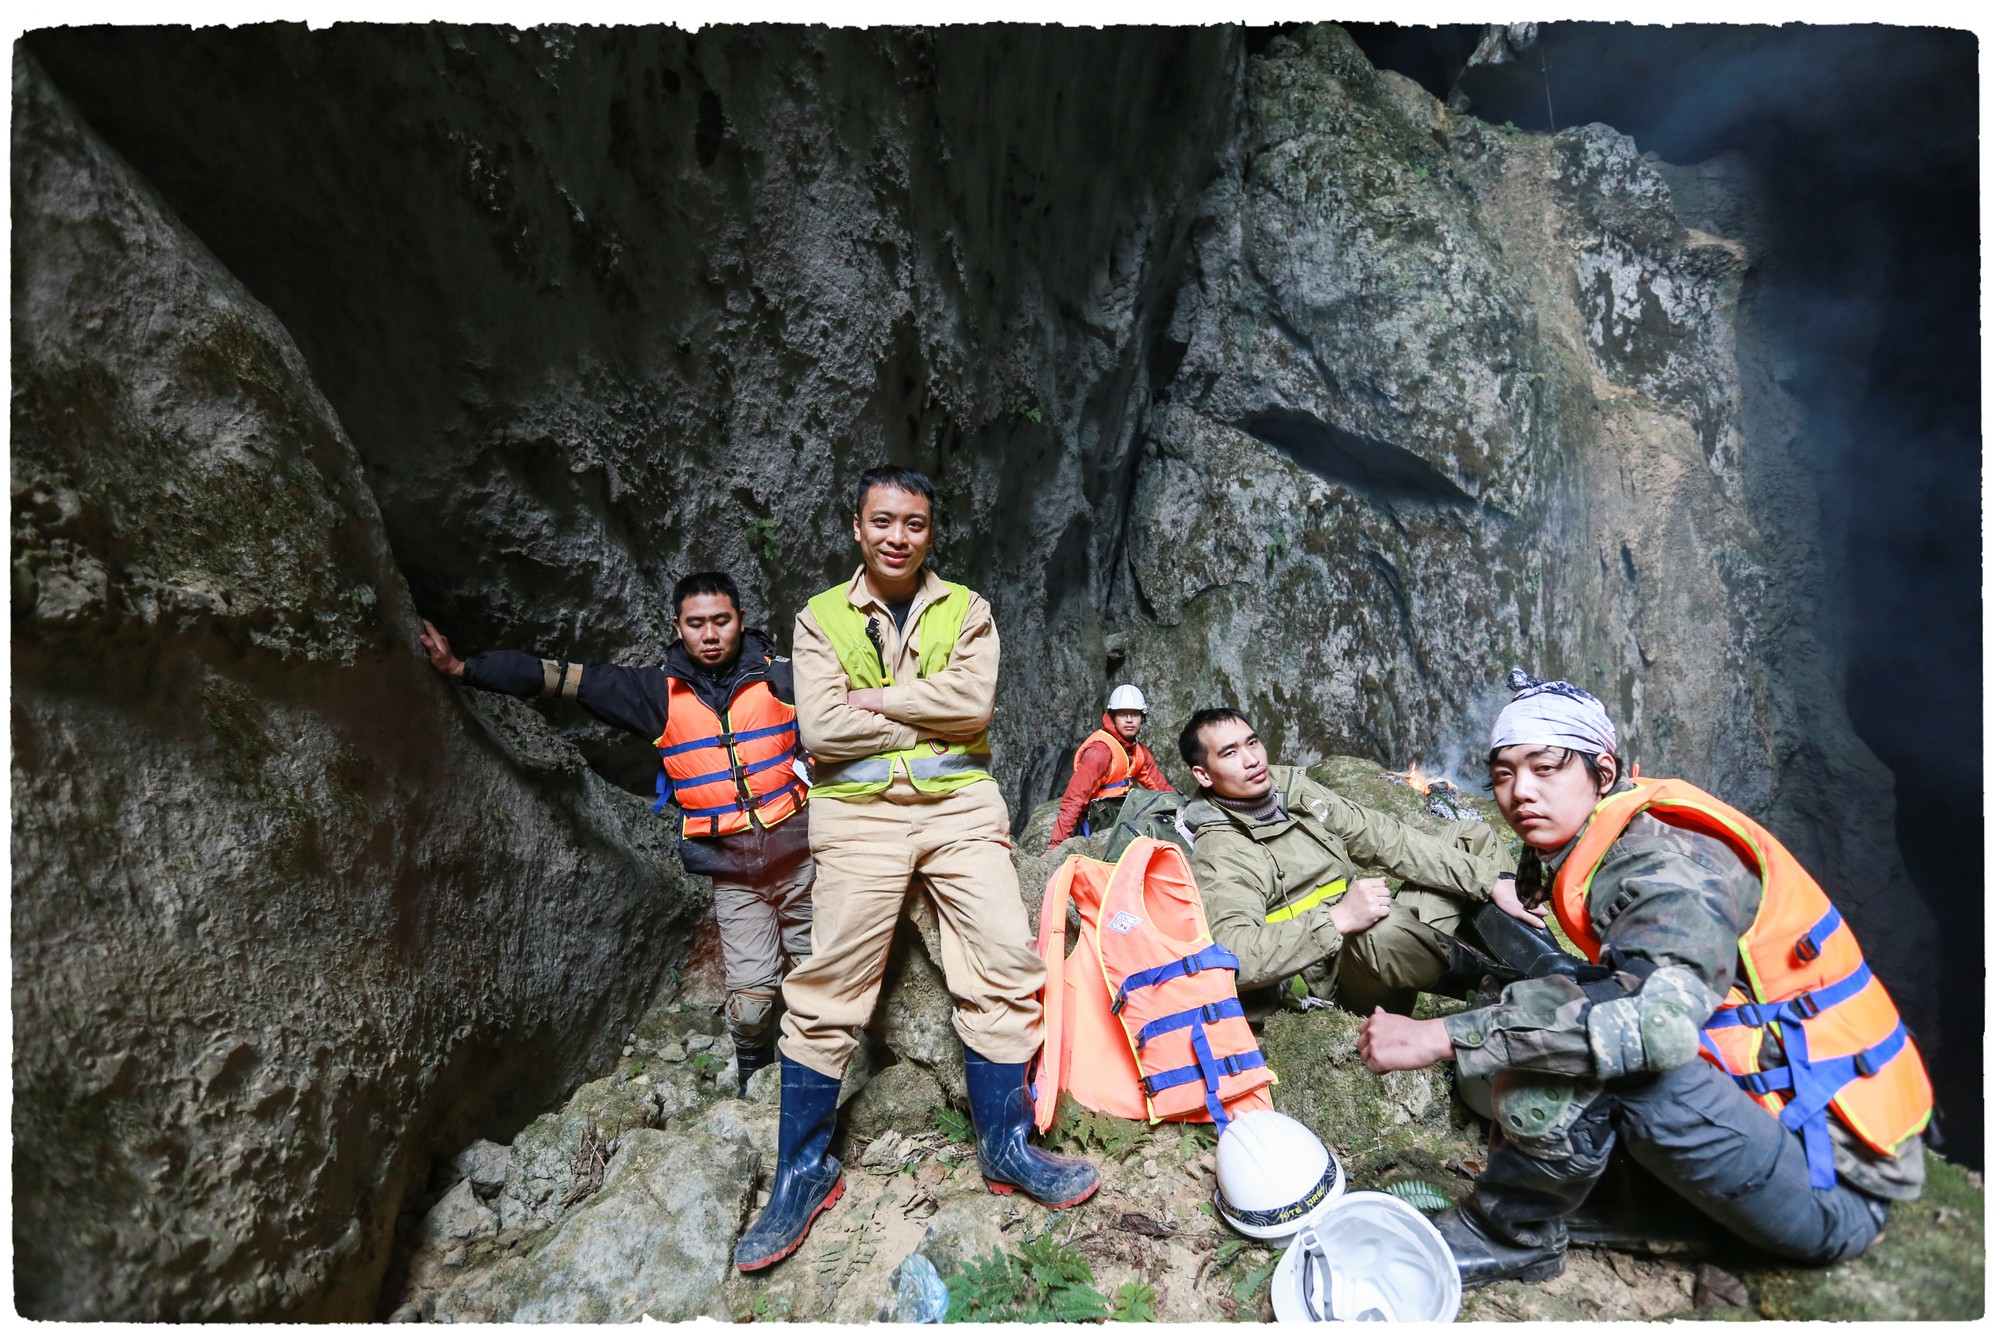 Enthusiast founds group to encourage cave exploration in Vietnam